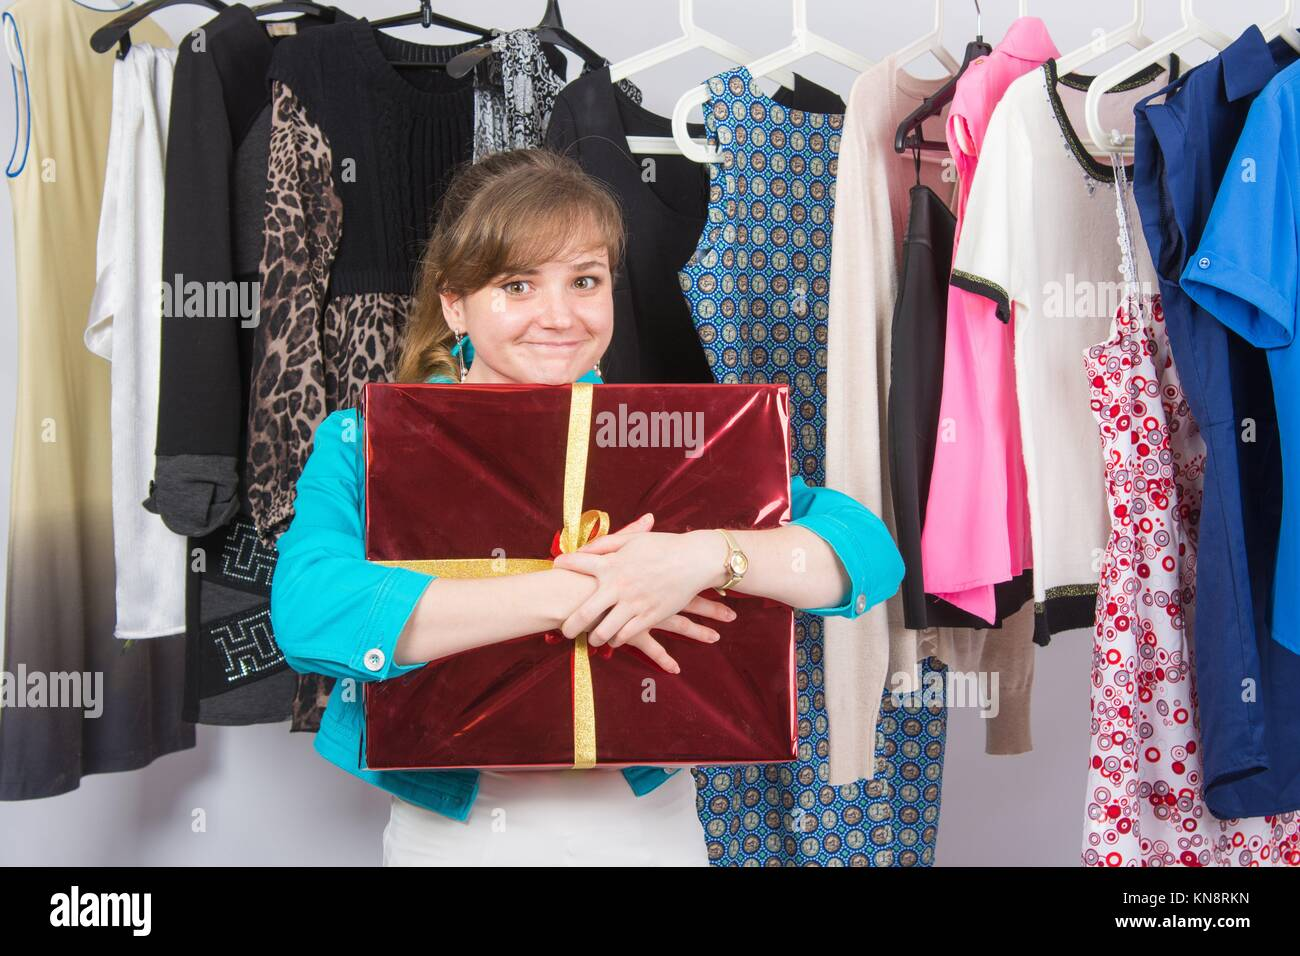 Happy young girl has received a welcome gift in the background hang things on hangers. - Stock Image